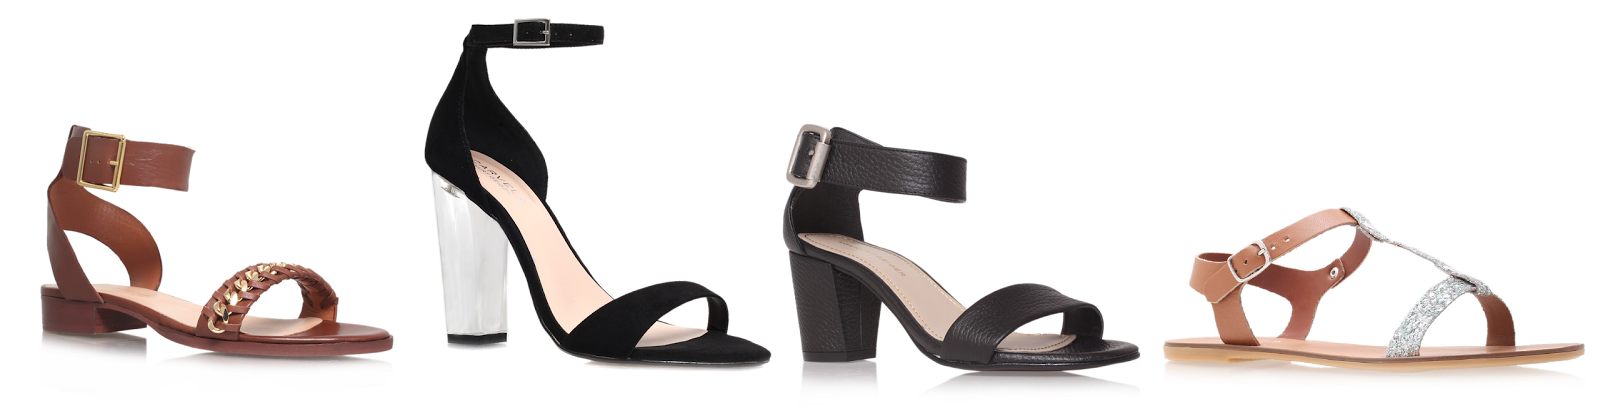 Shoeaholics discounts kurt geiger shoes.